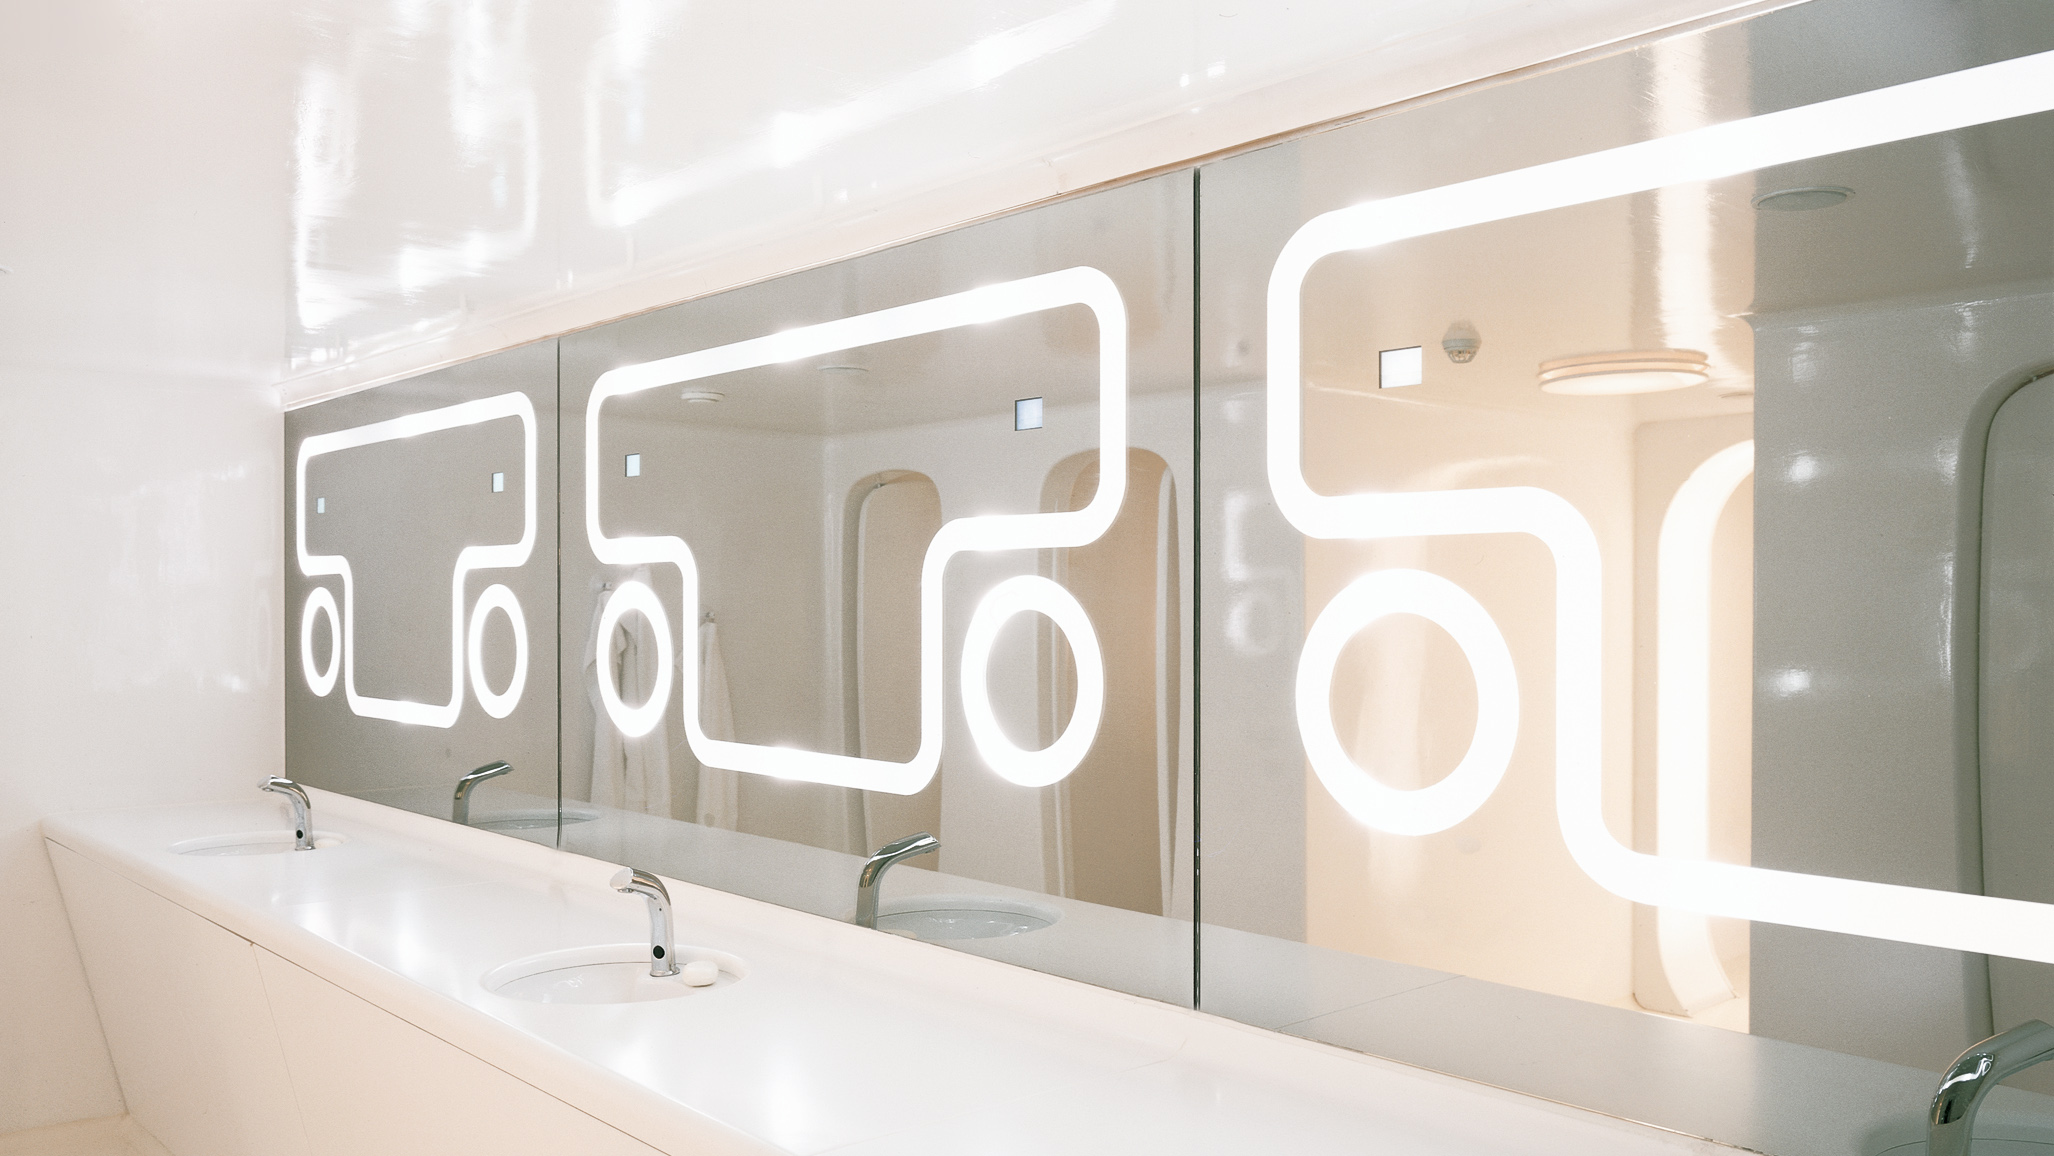 Lit mirrors at the restrooms of NASA nightclub representing the bar's visual identity